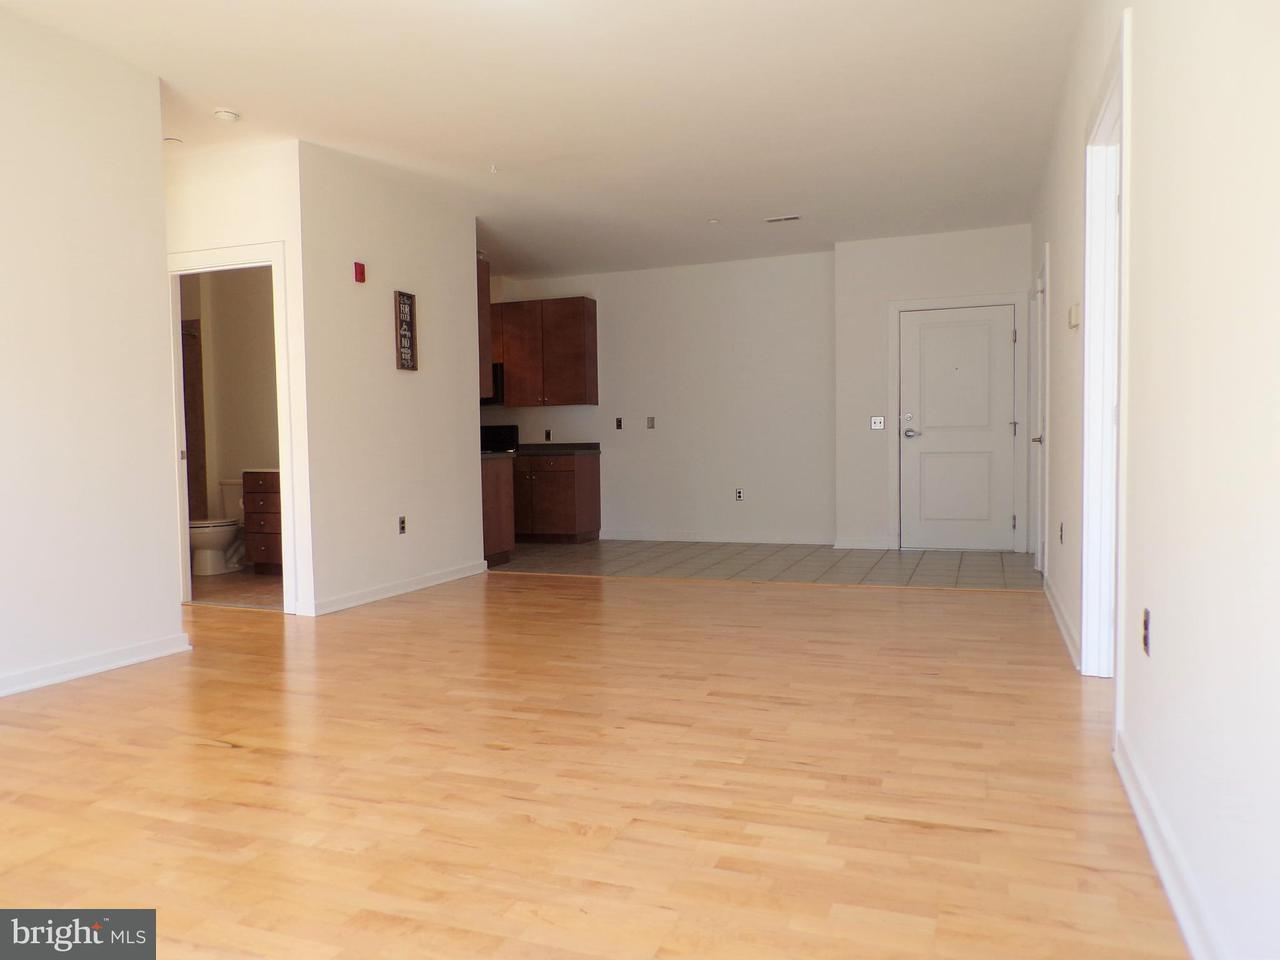 Condominium for Sale at 2007 Clipper Park Rd #317 Baltimore, Maryland 21211 United States